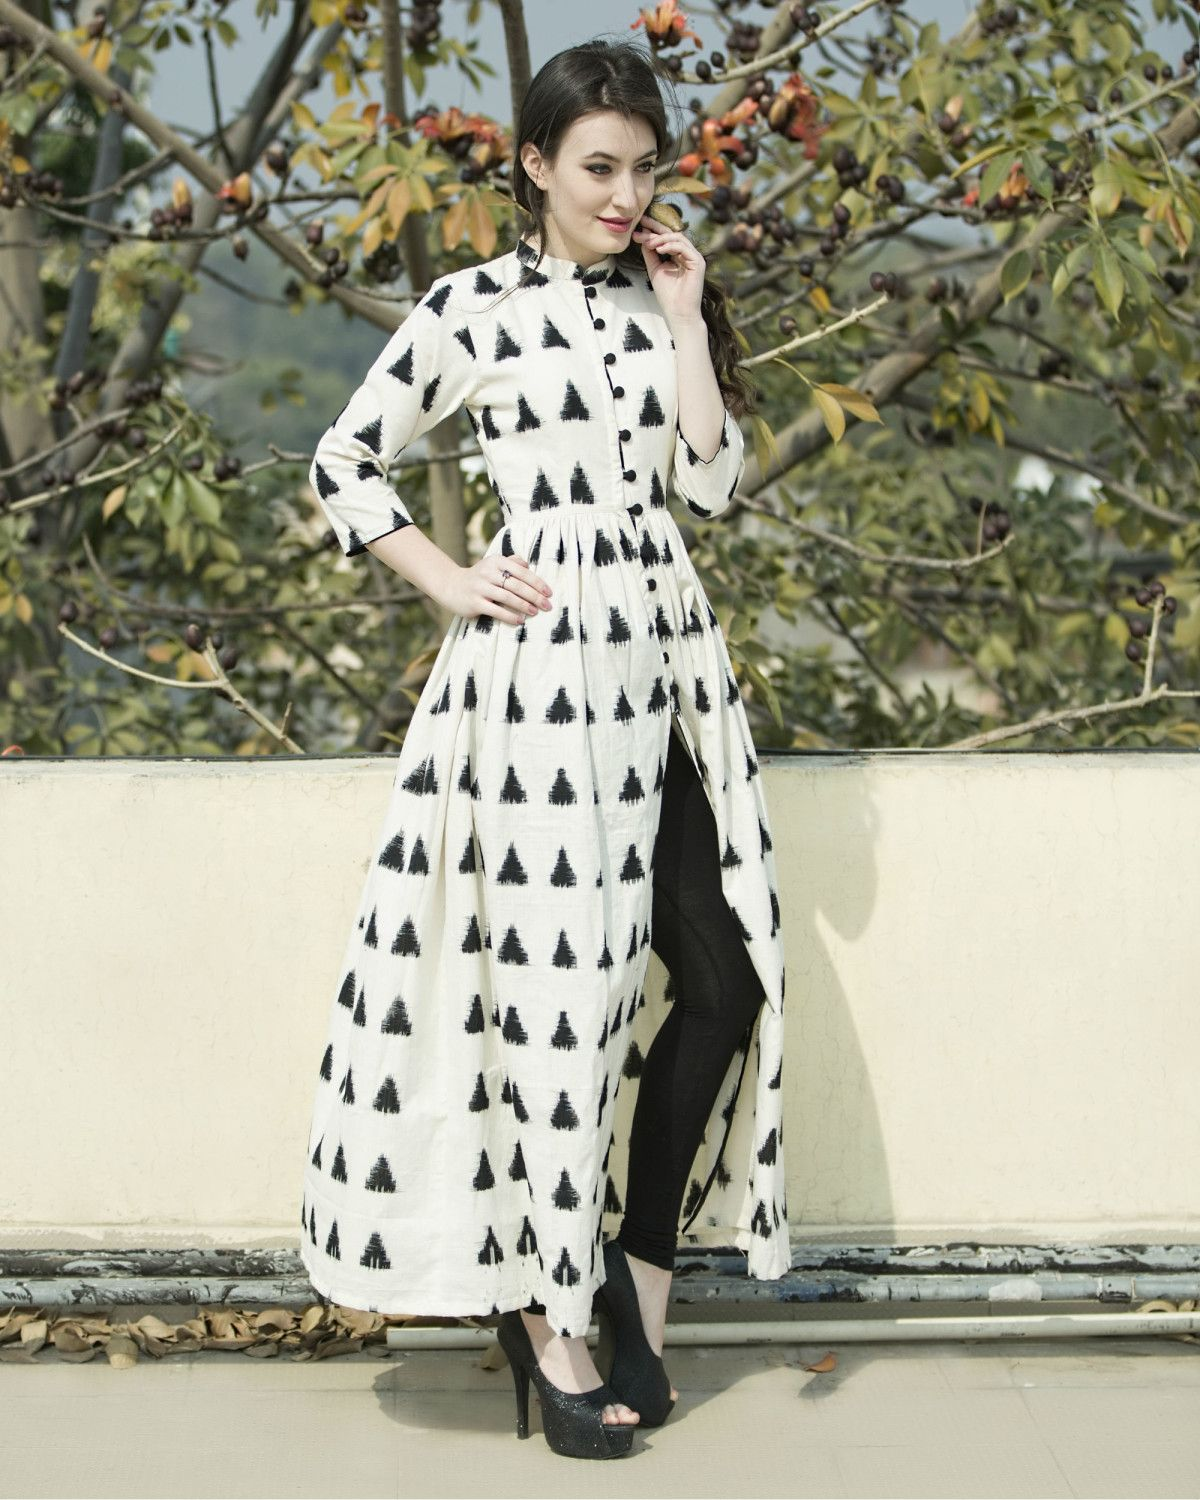 e52def72819 The Secret Label Off White Cotton Printed Front Cut Kurti.  Klpgk8chuem0yqiswkfe Black ...